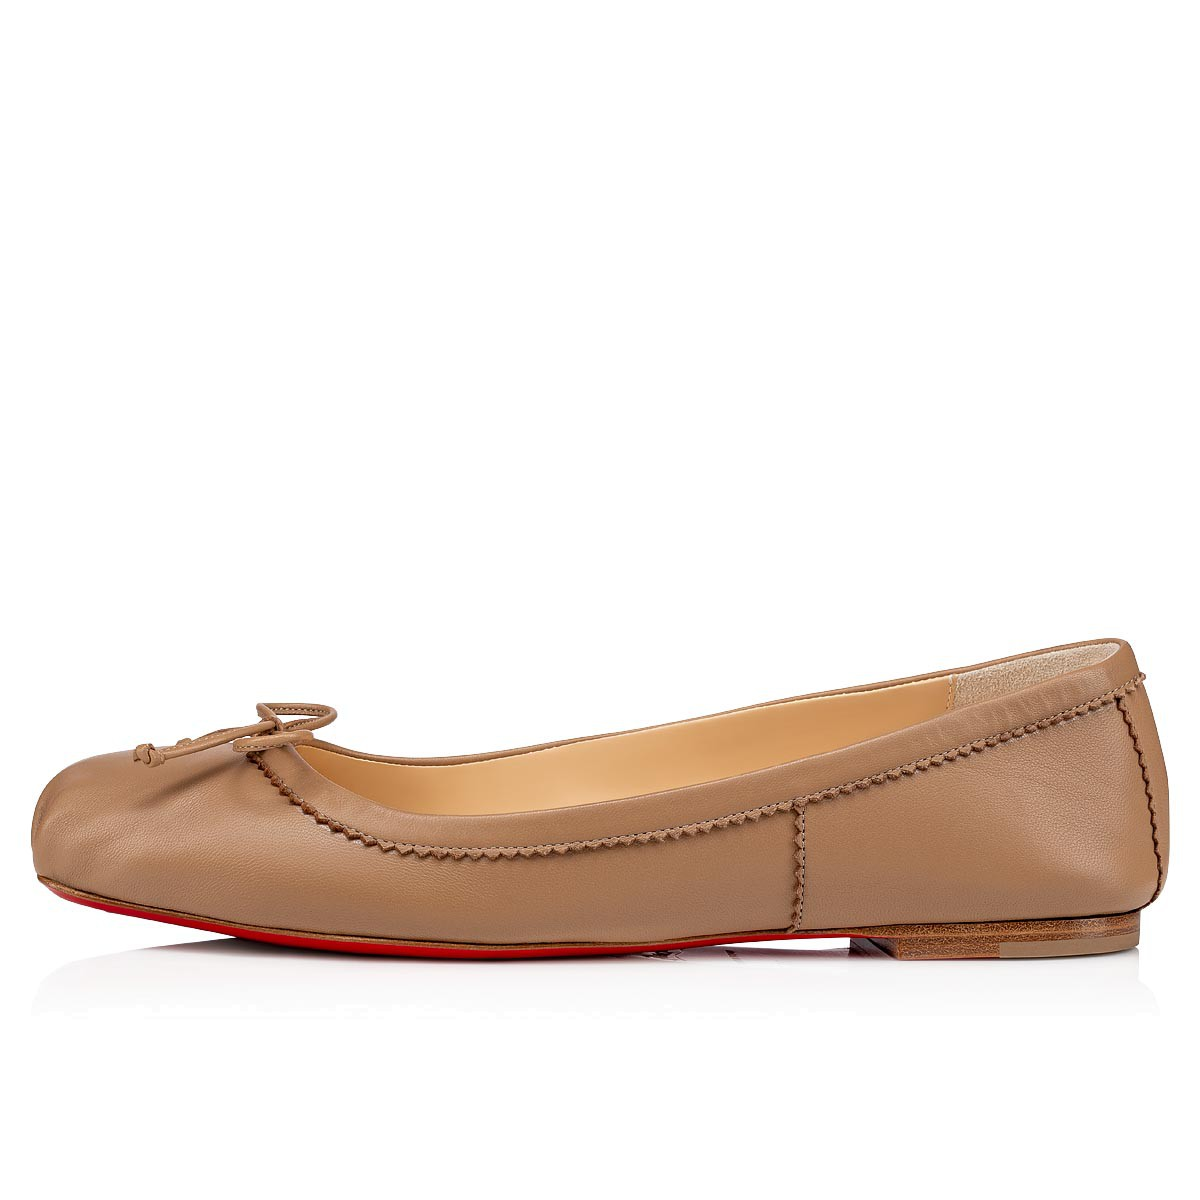 Shoes - Mamadrague - Christian Louboutin